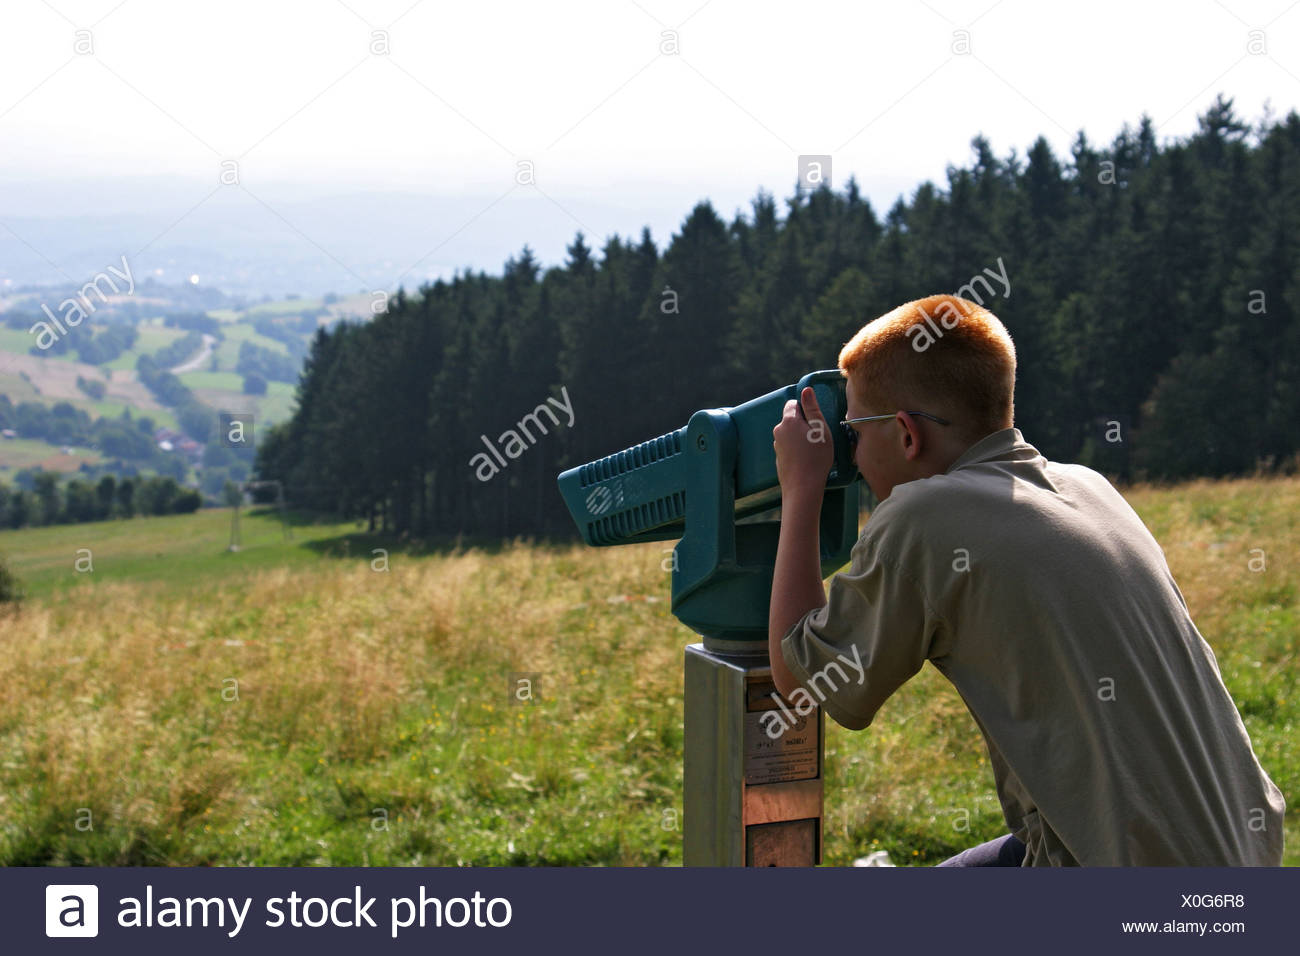 Boy with short cut red hair looking through a fixly mounted telescope. Hoherodskopf mountain, Vogelsberg, Hesse, Germany. Stock Photo